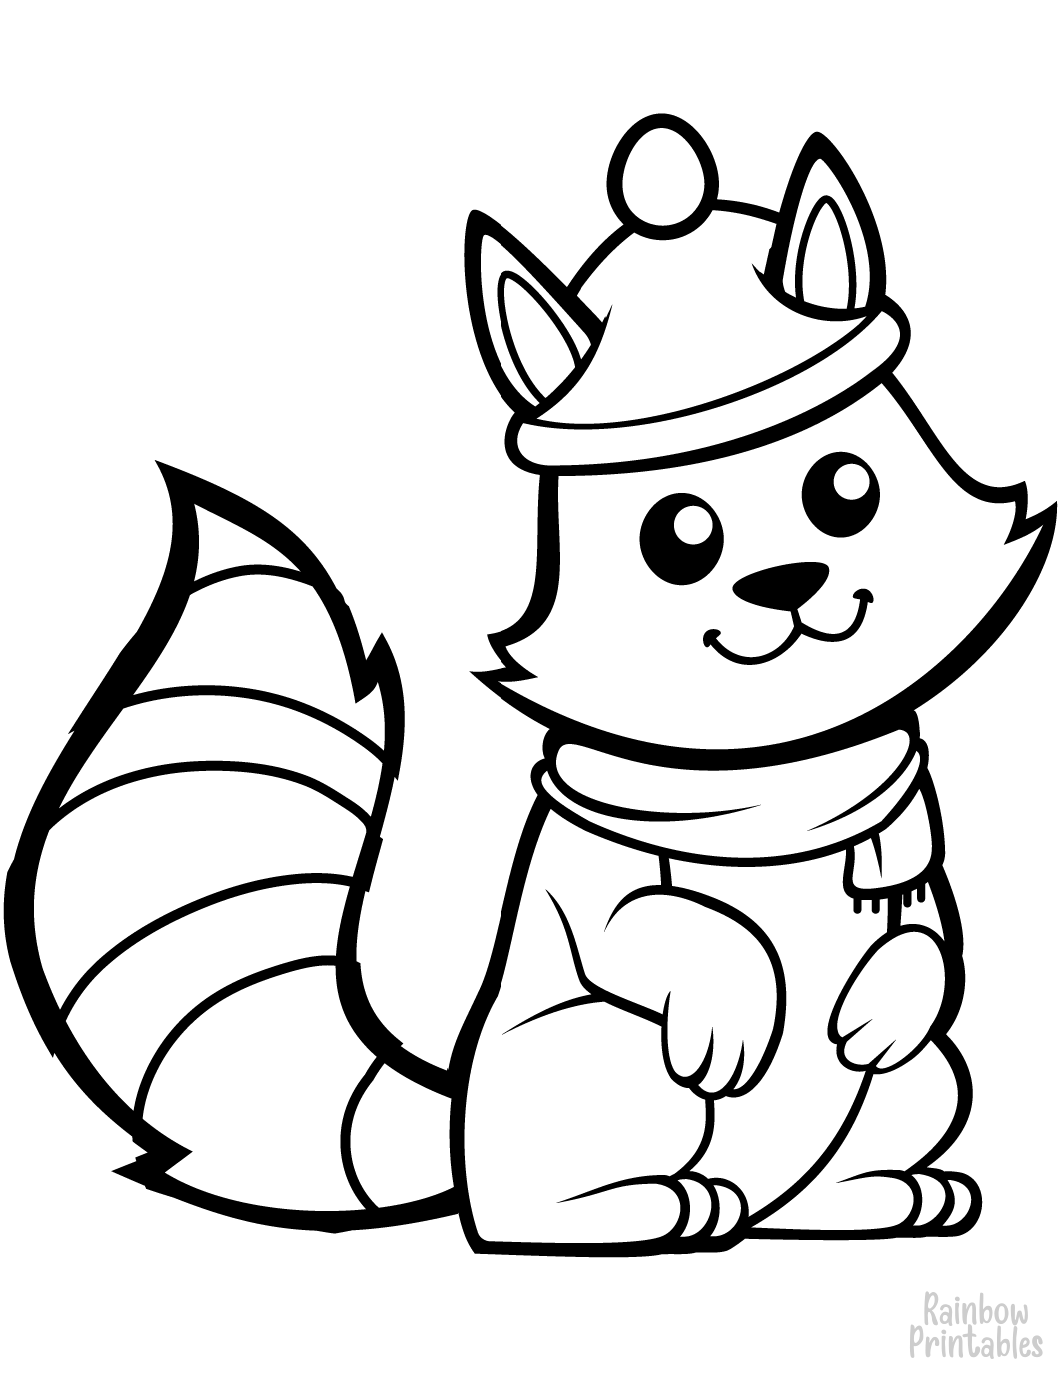 Free Seasonal Coloring Pages (Spring, Summer, Fall, Winter)